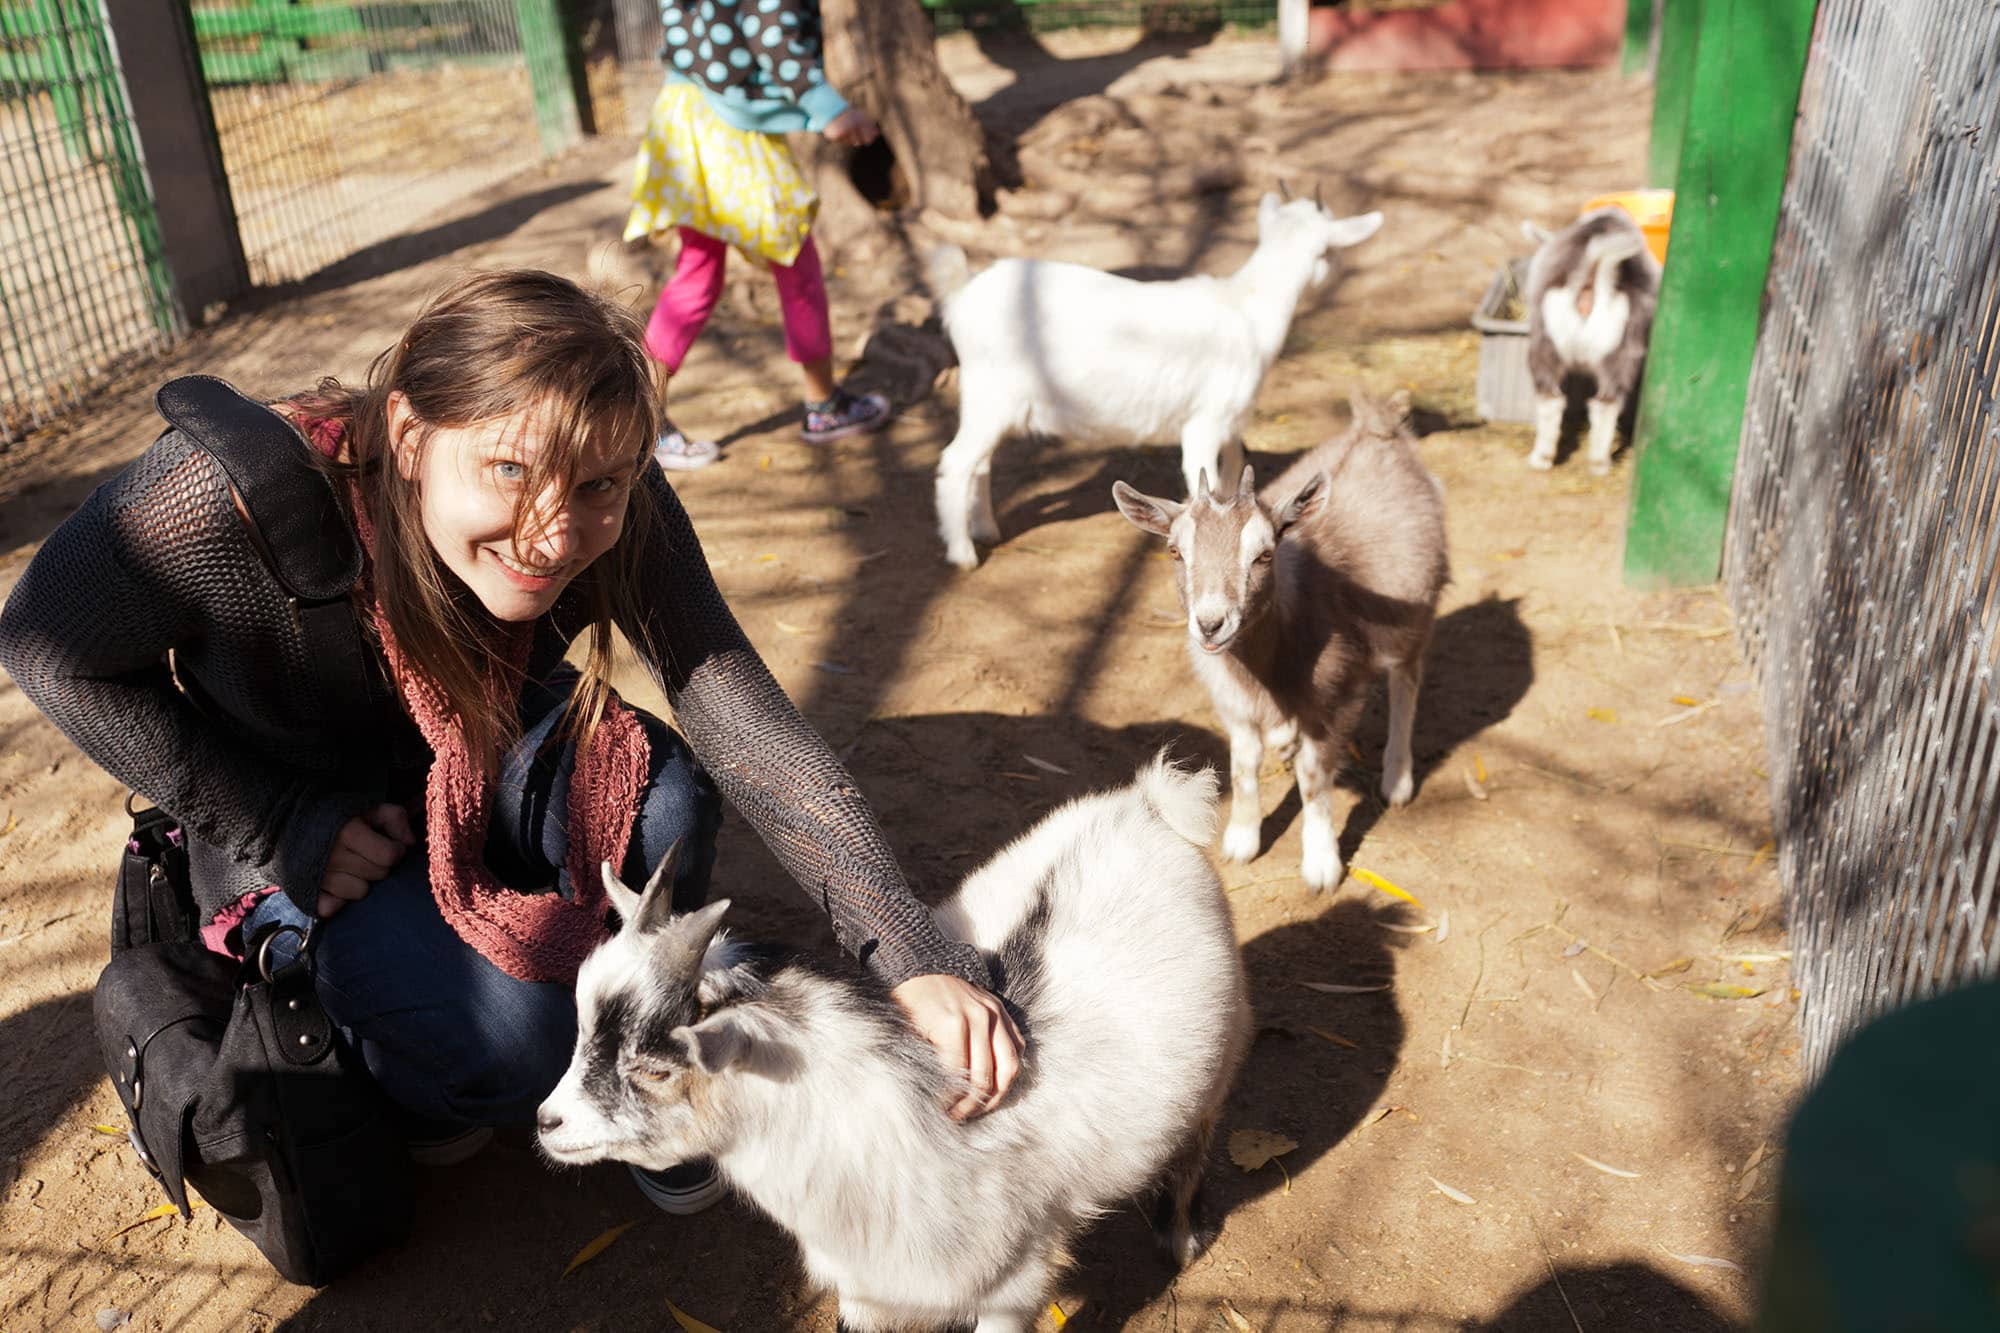 Me and a goat at Bear Den Zoo and Petting Farm in Wisconsin